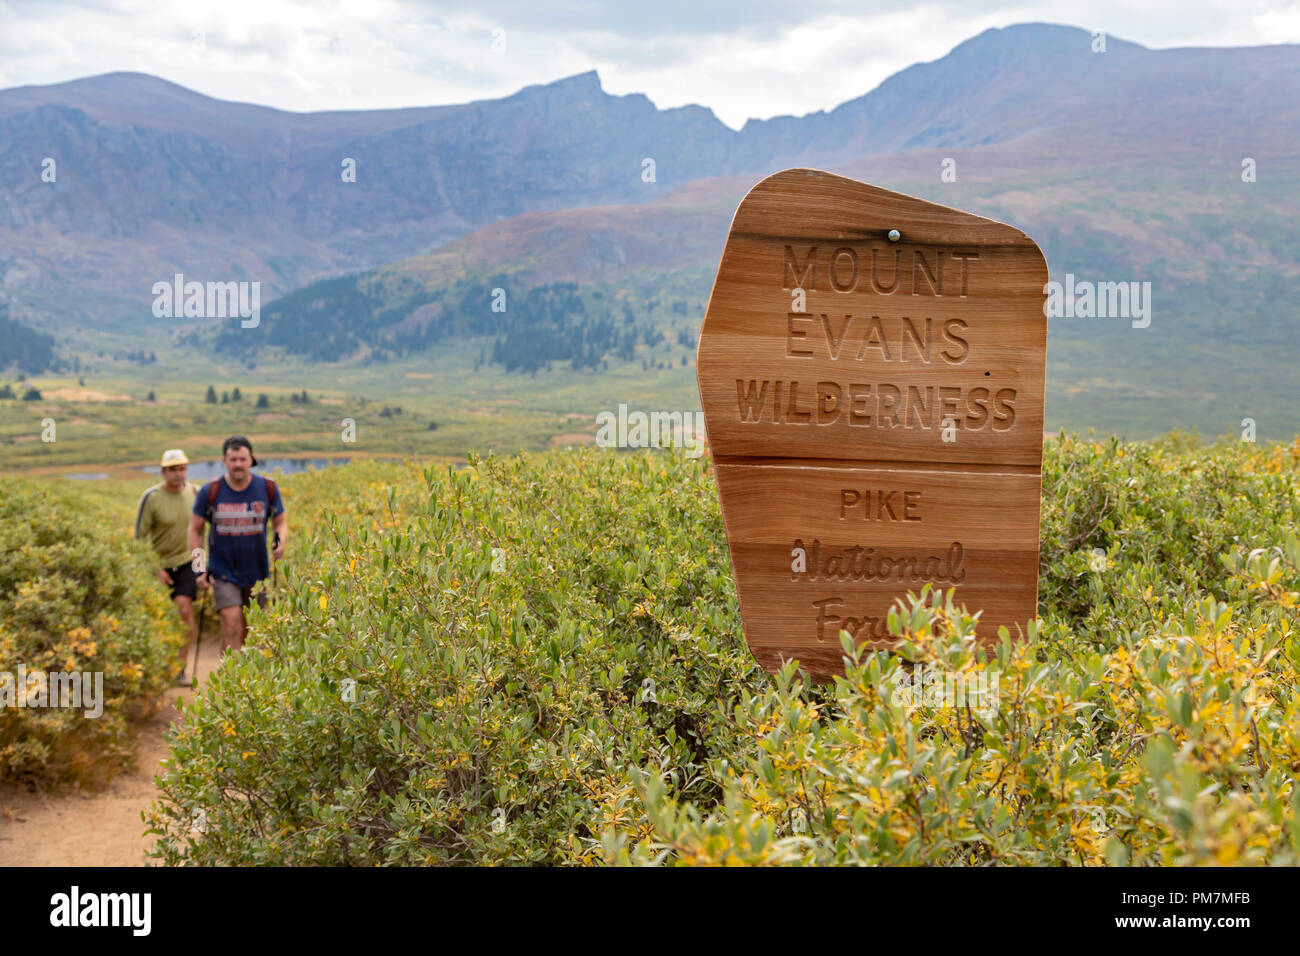 Georgetown, Colorado - Hikers on the trail from Guanella Pass to 14,060-foot Mt. Bierstadt in the Mt. Evans Wilderness Area. - Stock Image